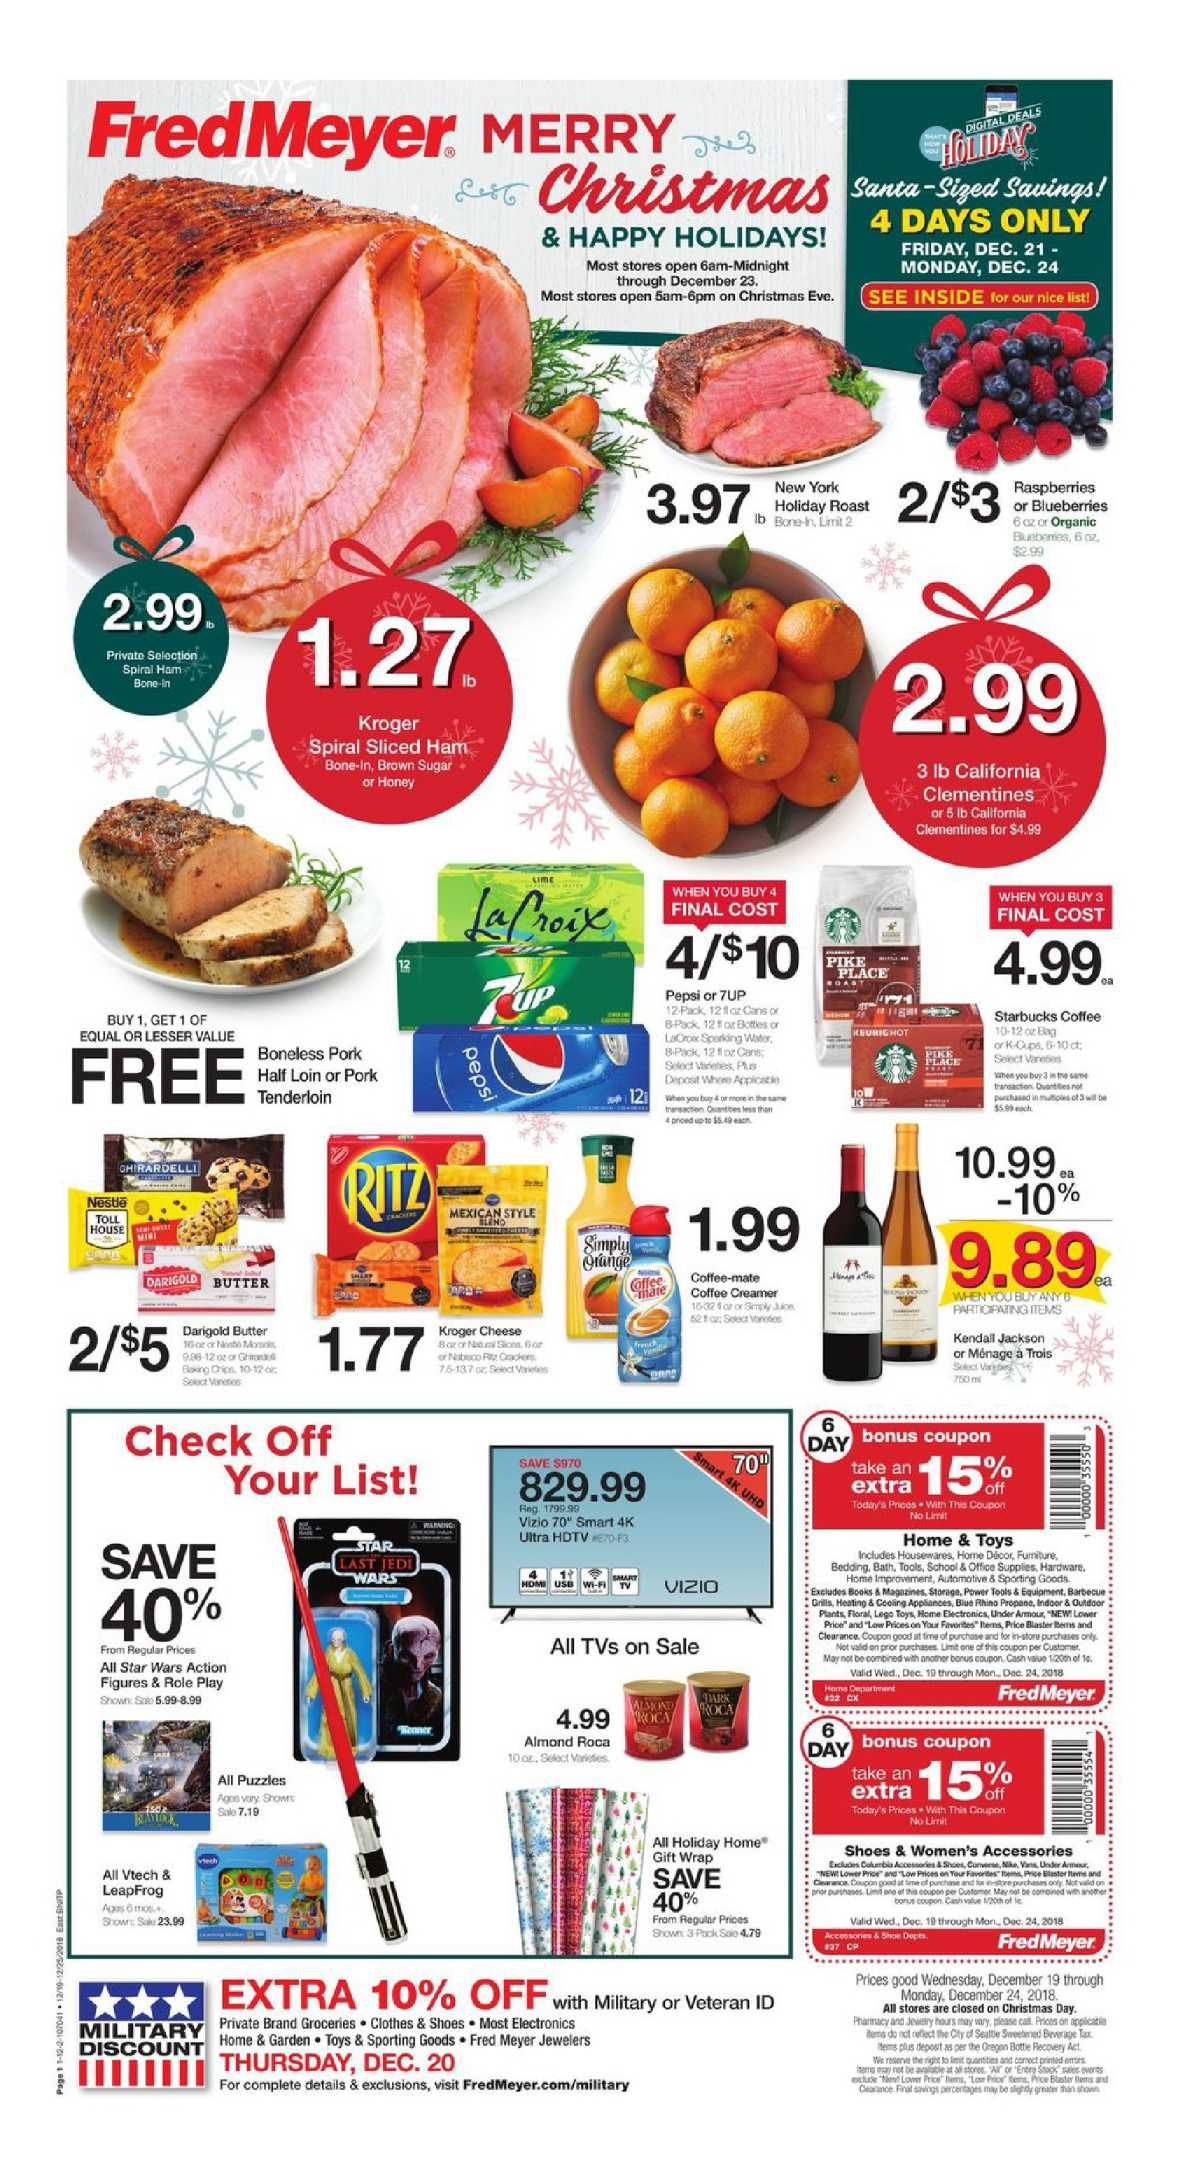 151b7be32468 Check Latest Fred Meyer Weekly ad flyer December 19 – 24